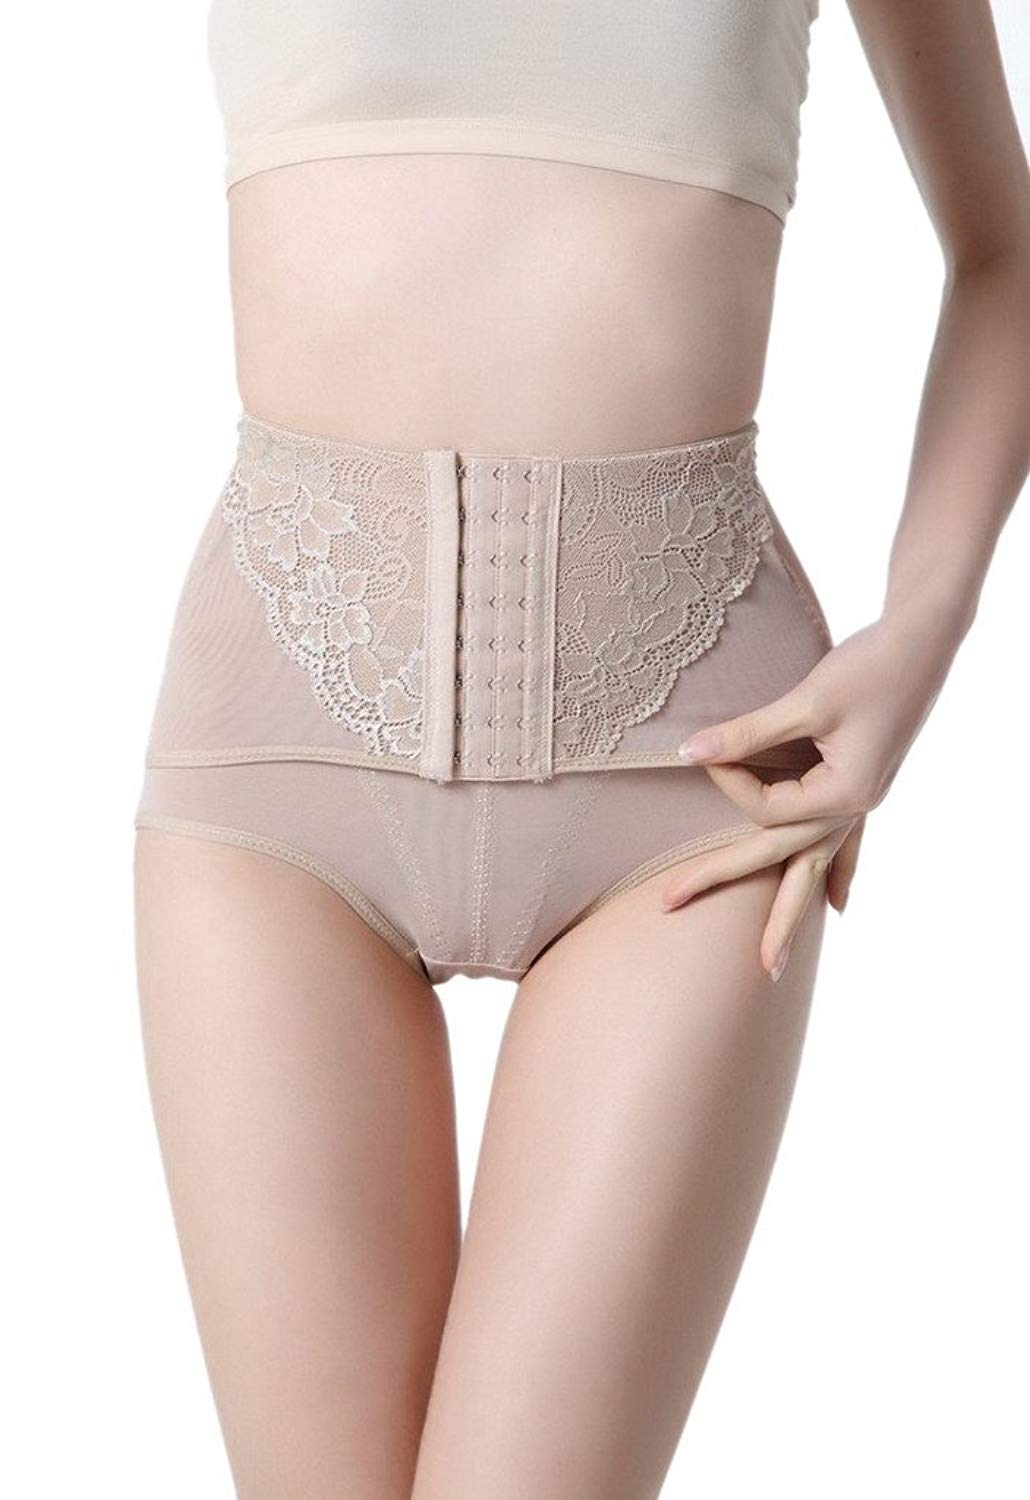 e4fd8de24 Get Quotations · Toyobuy Women Hi-Waist Shapewear Postpartum Belly Recovery  Tummy Control Panty